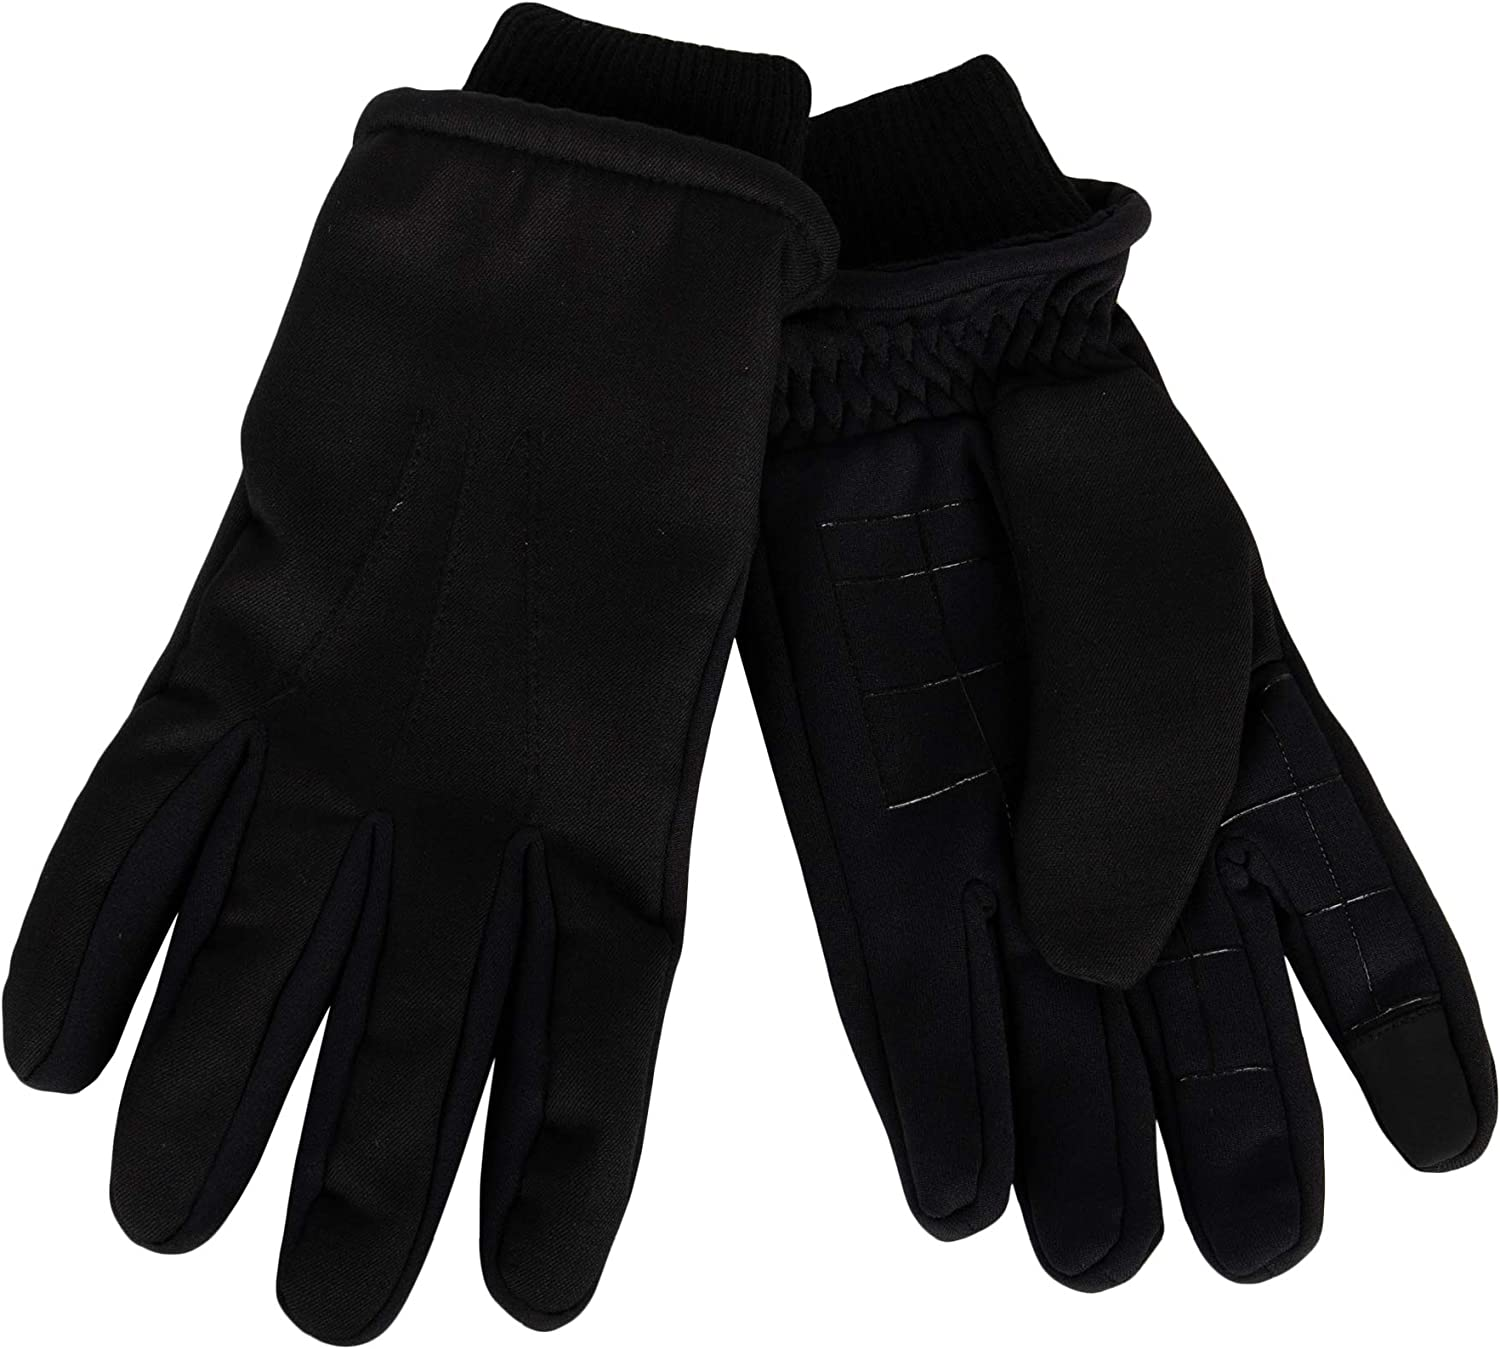 Dockers mens Fabric Gloves Great interest Smartphone With Super-cheap Capabilit Touchscreen